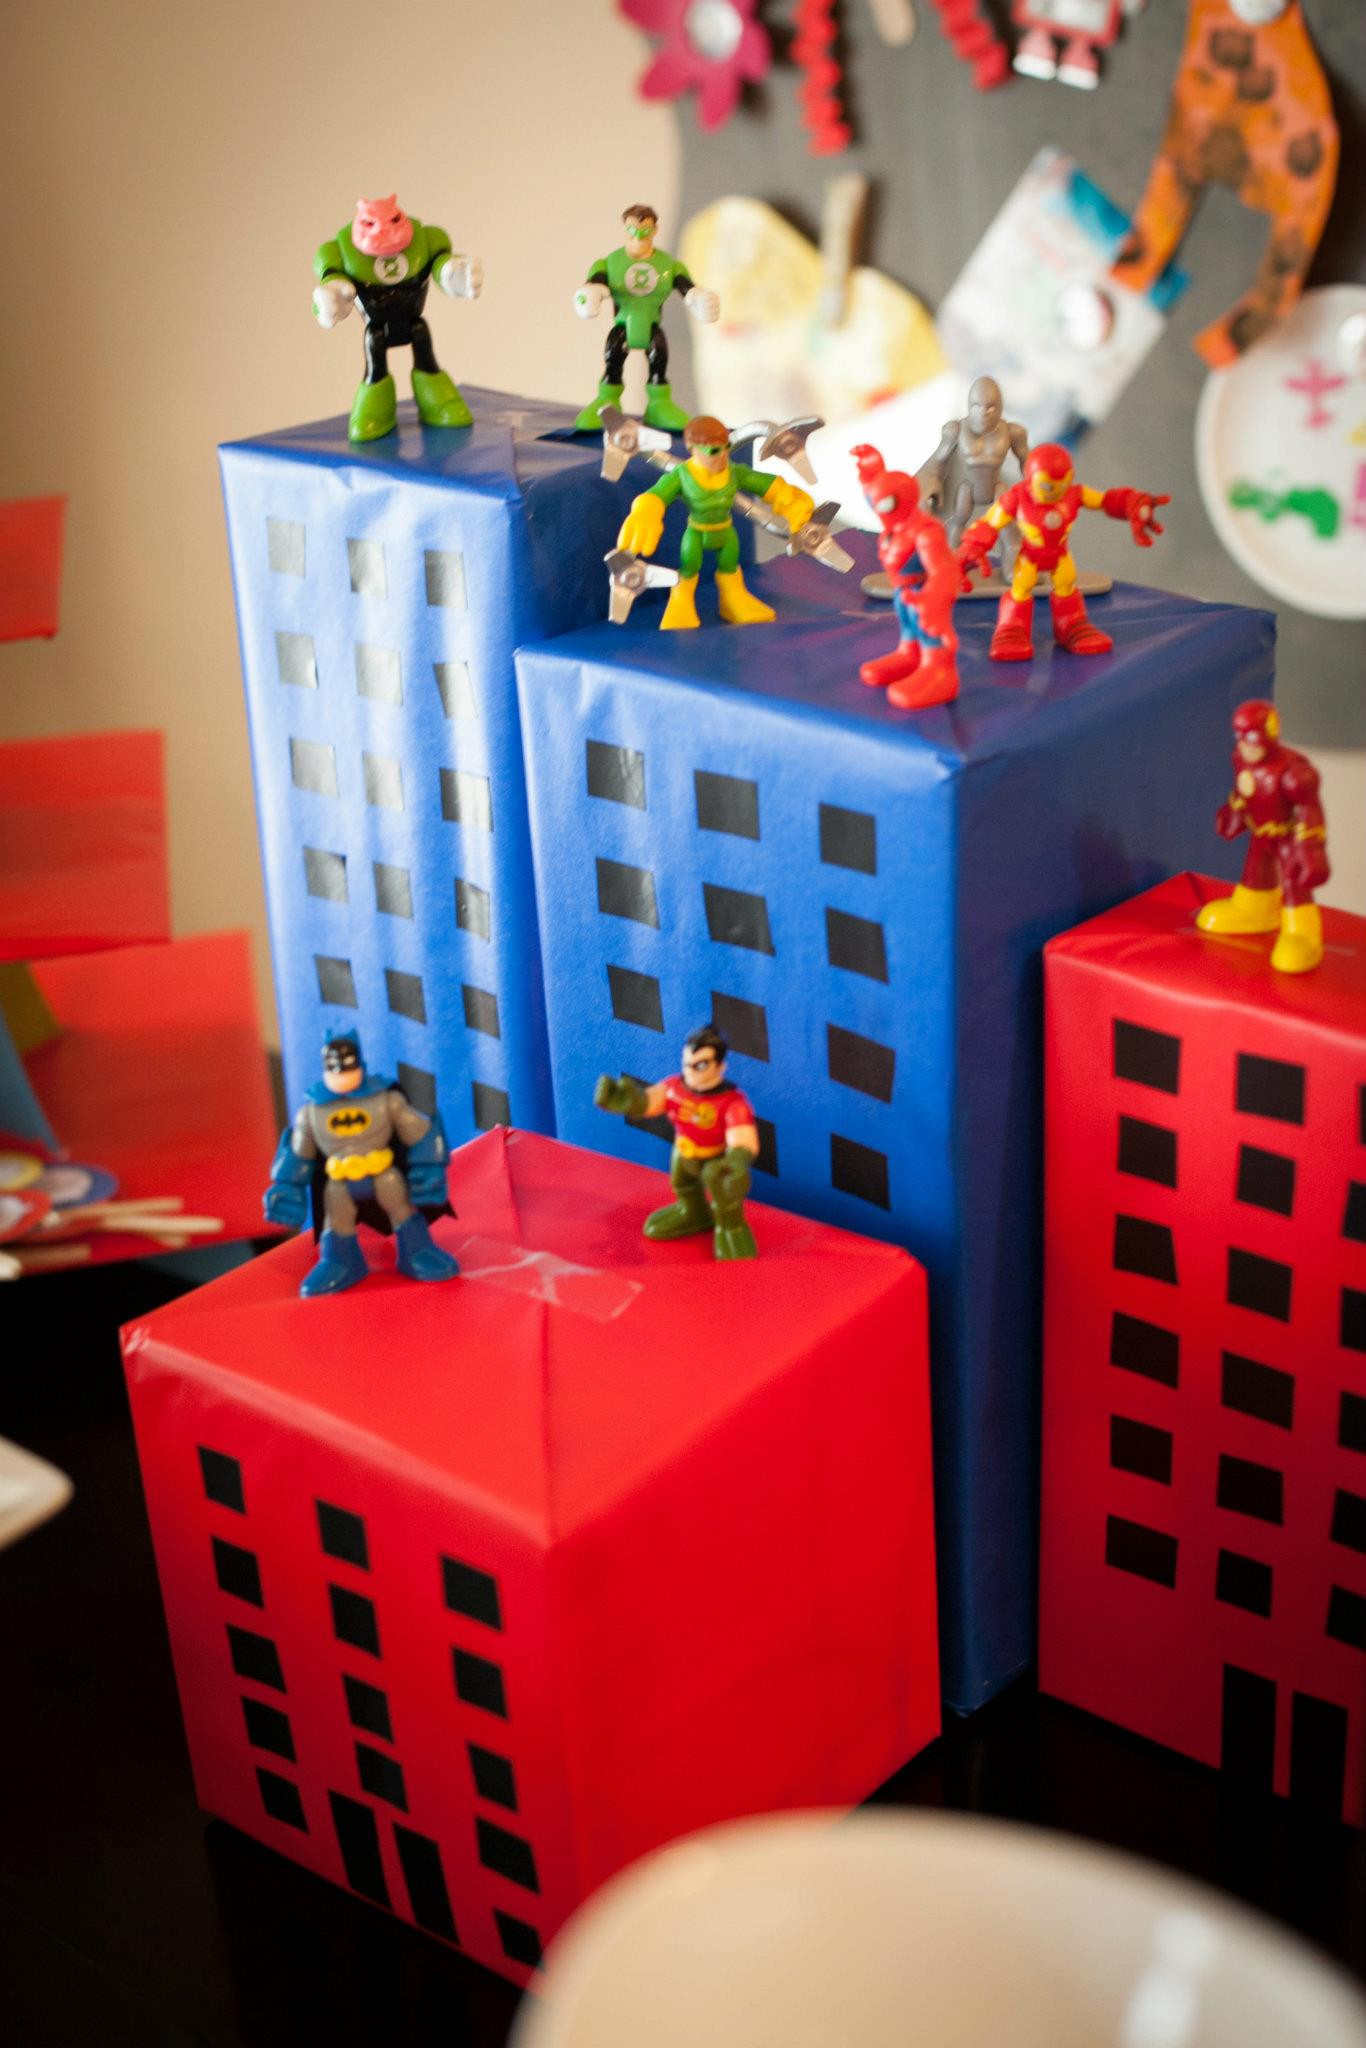 Best ideas about Superhero Birthday Decorations . Save or Pin Superhero Party Now.